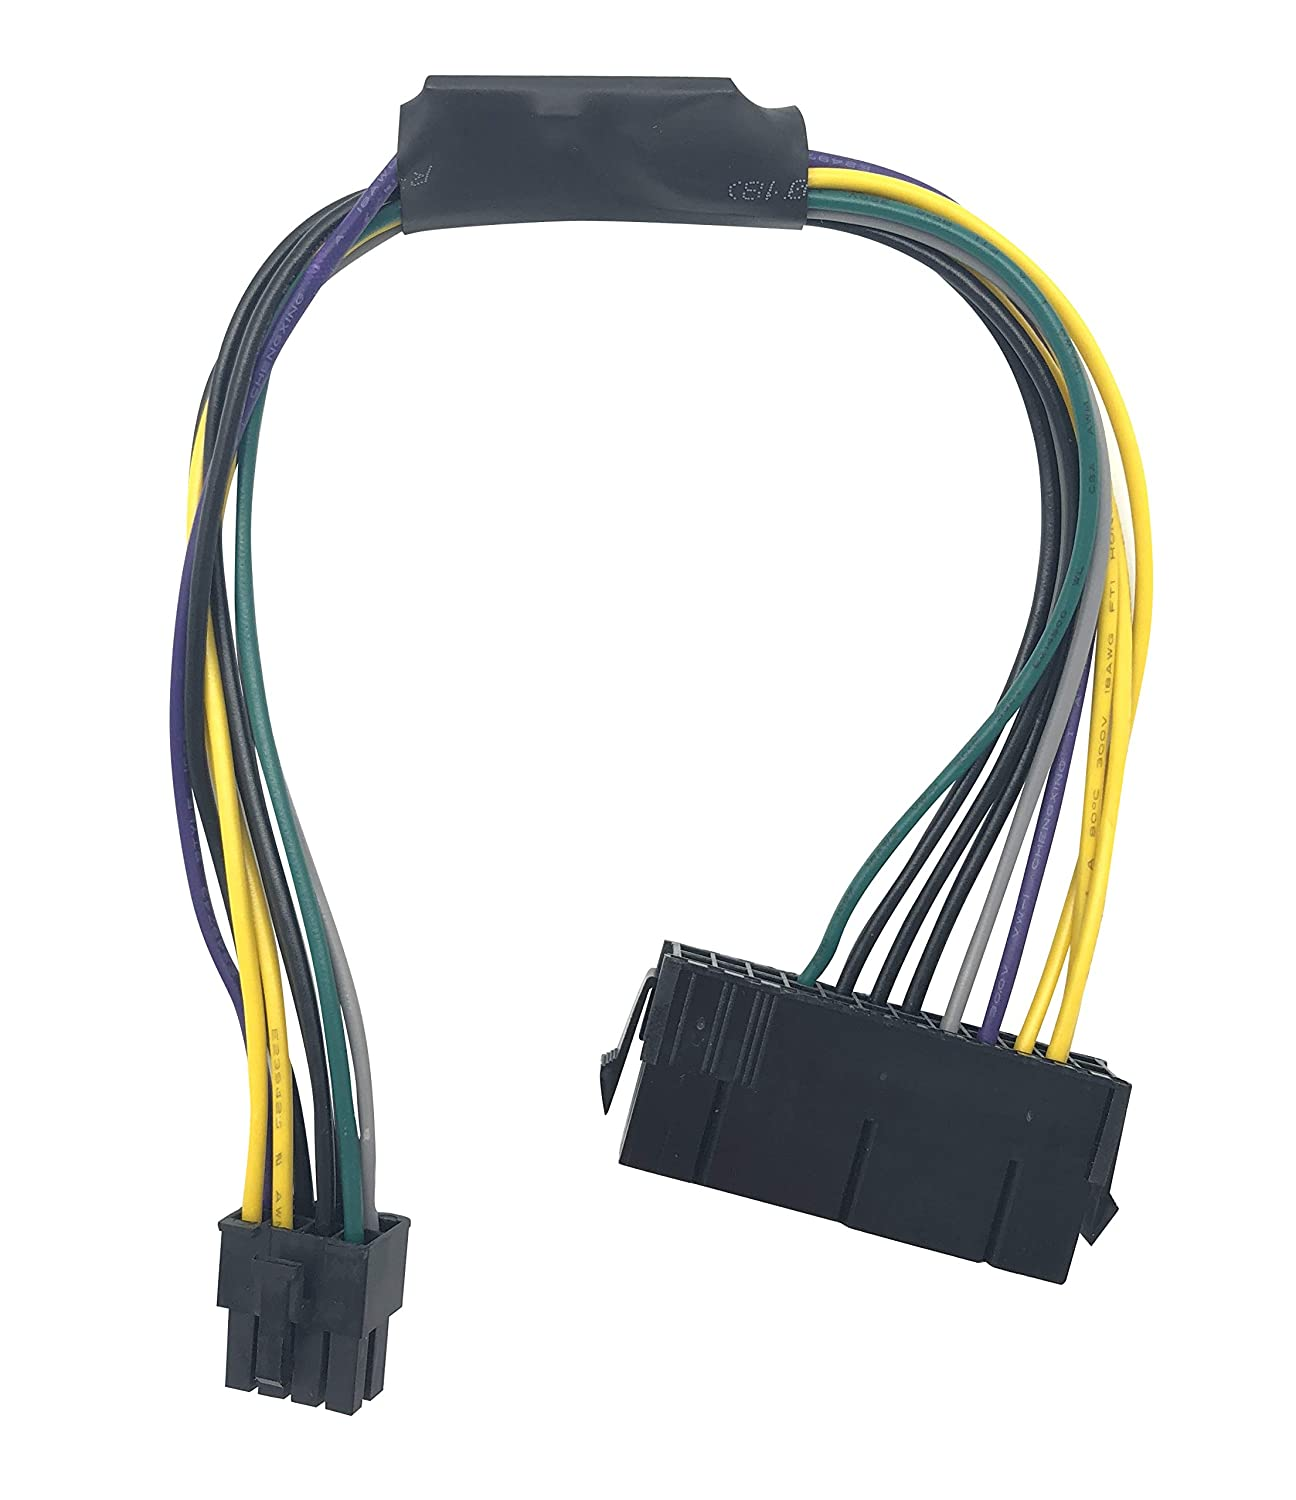 Power Supply PSU 24pin ATX Mainboard Motherboard Adapter Connector Cable Dual LJ